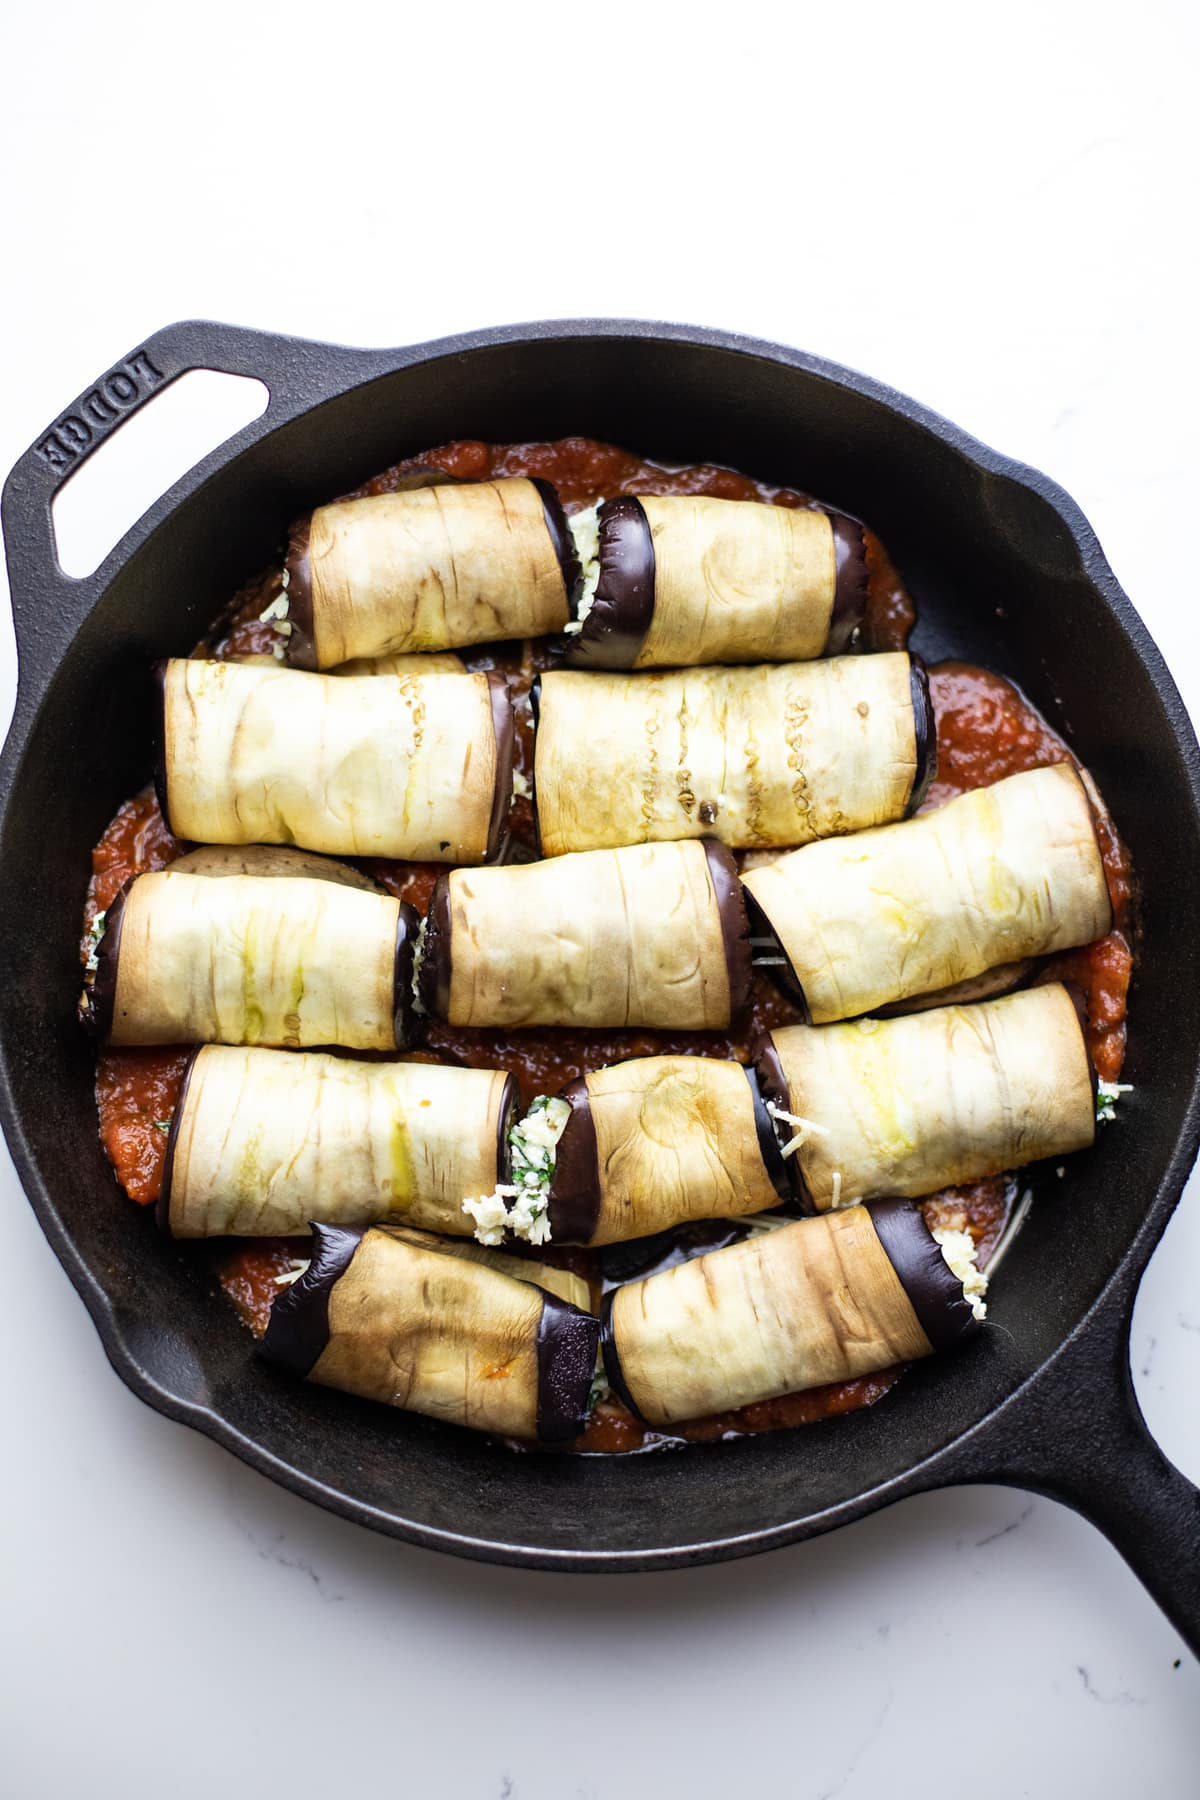 eggplant rollatini in a black cast iron skillet.